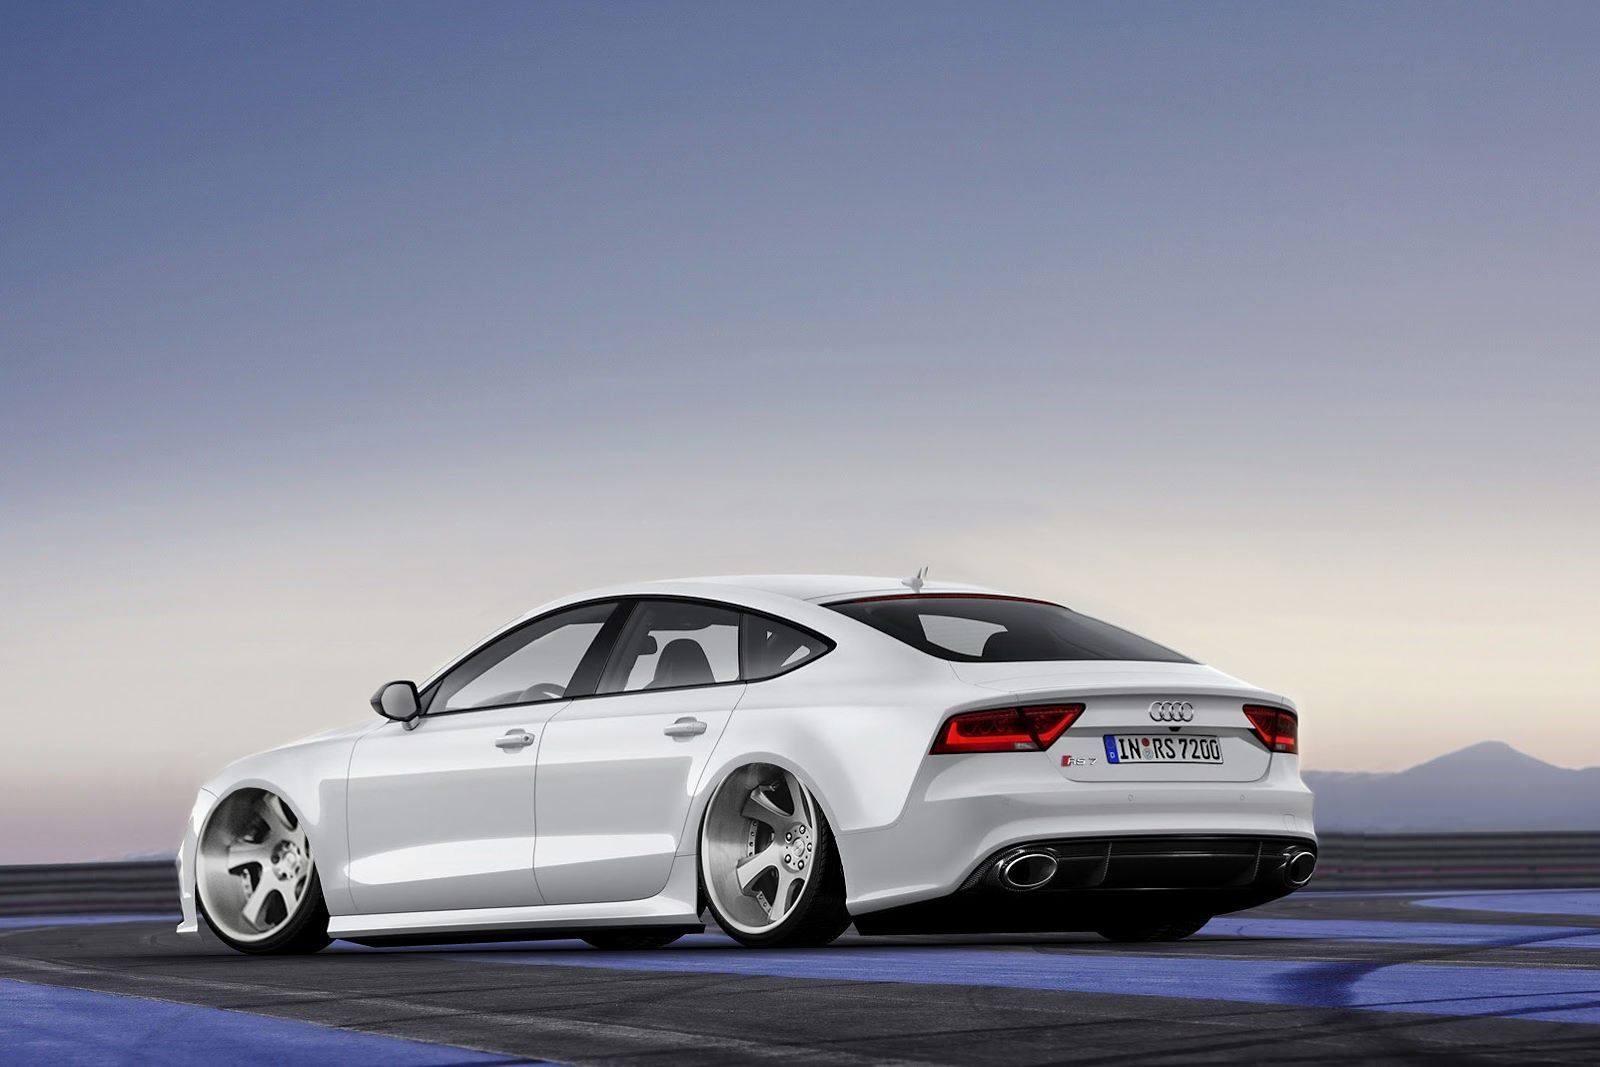 Audi Rs7 Wallpaper >> Photoshop: Audi RS7 x AME Shallen WX | lifewithjson